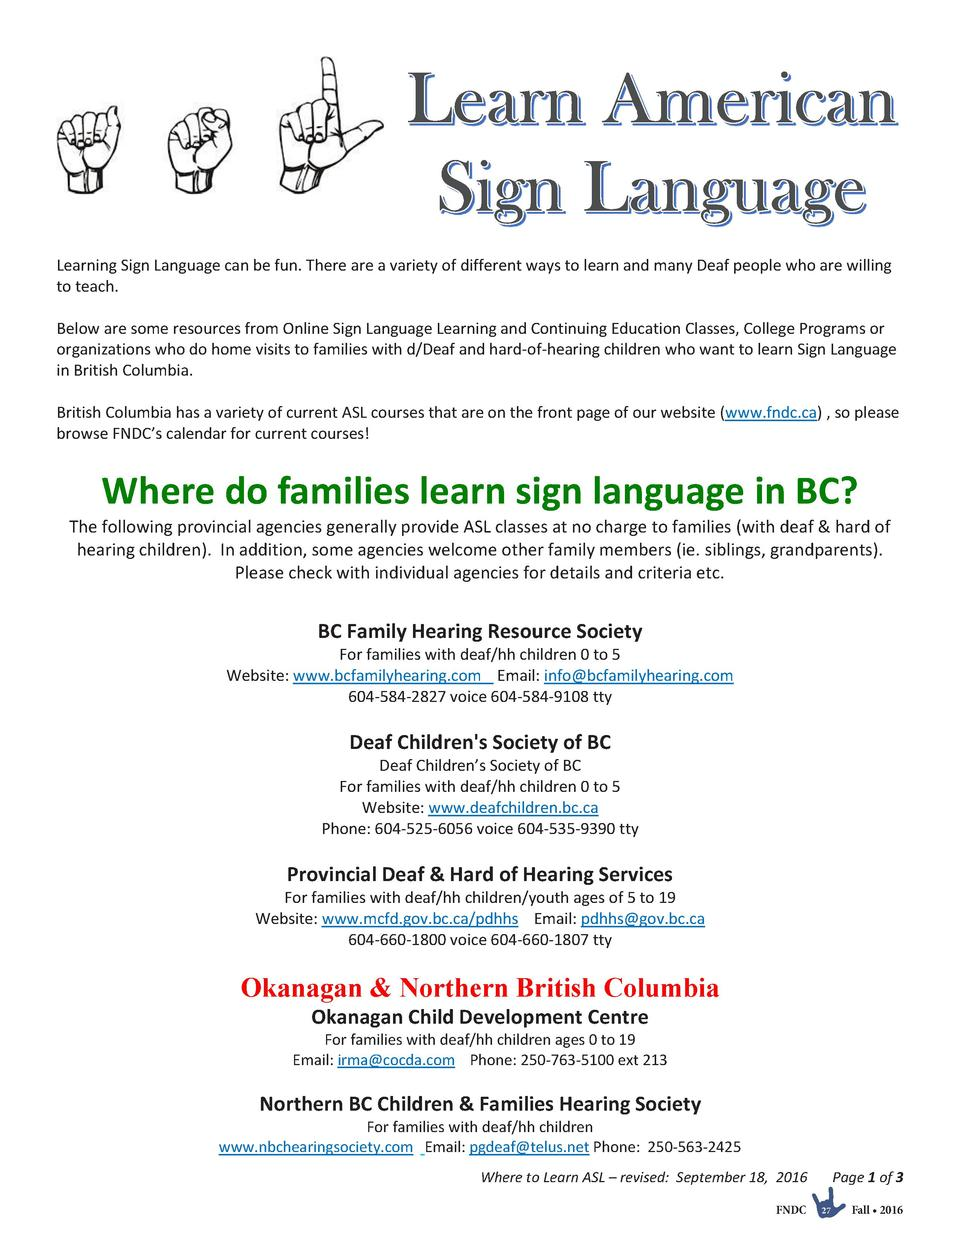 Learning Sign Language can be fun. There are a variety of different ways to learn and many Deaf people who are willing to ...